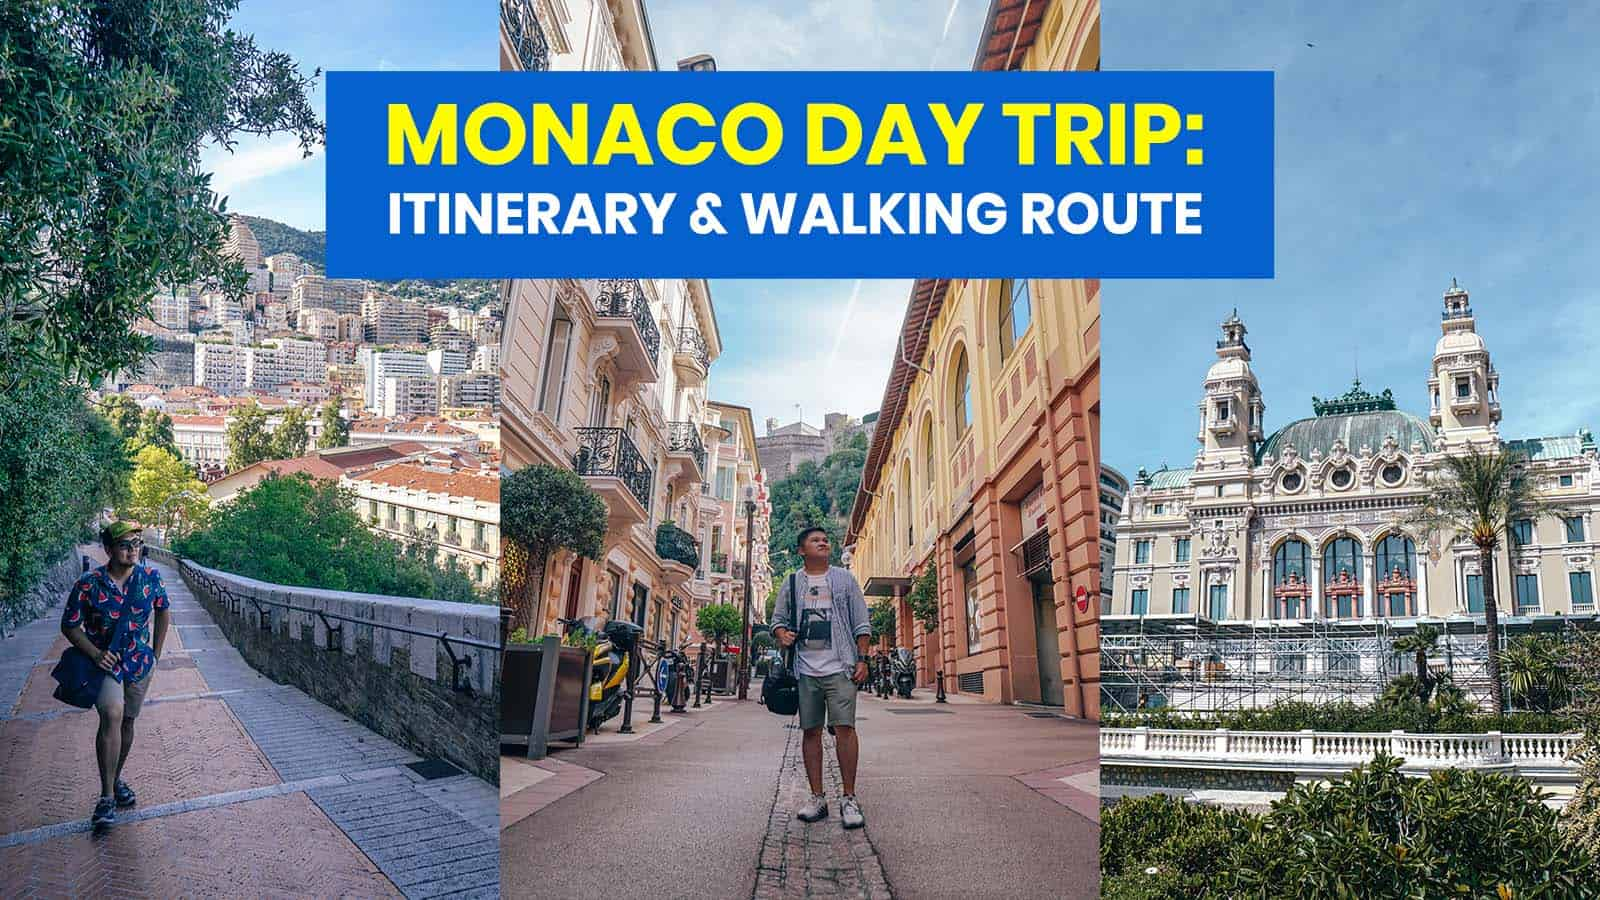 MONACO DAY TRIP ITINERARY: Things to Do & Walking Route